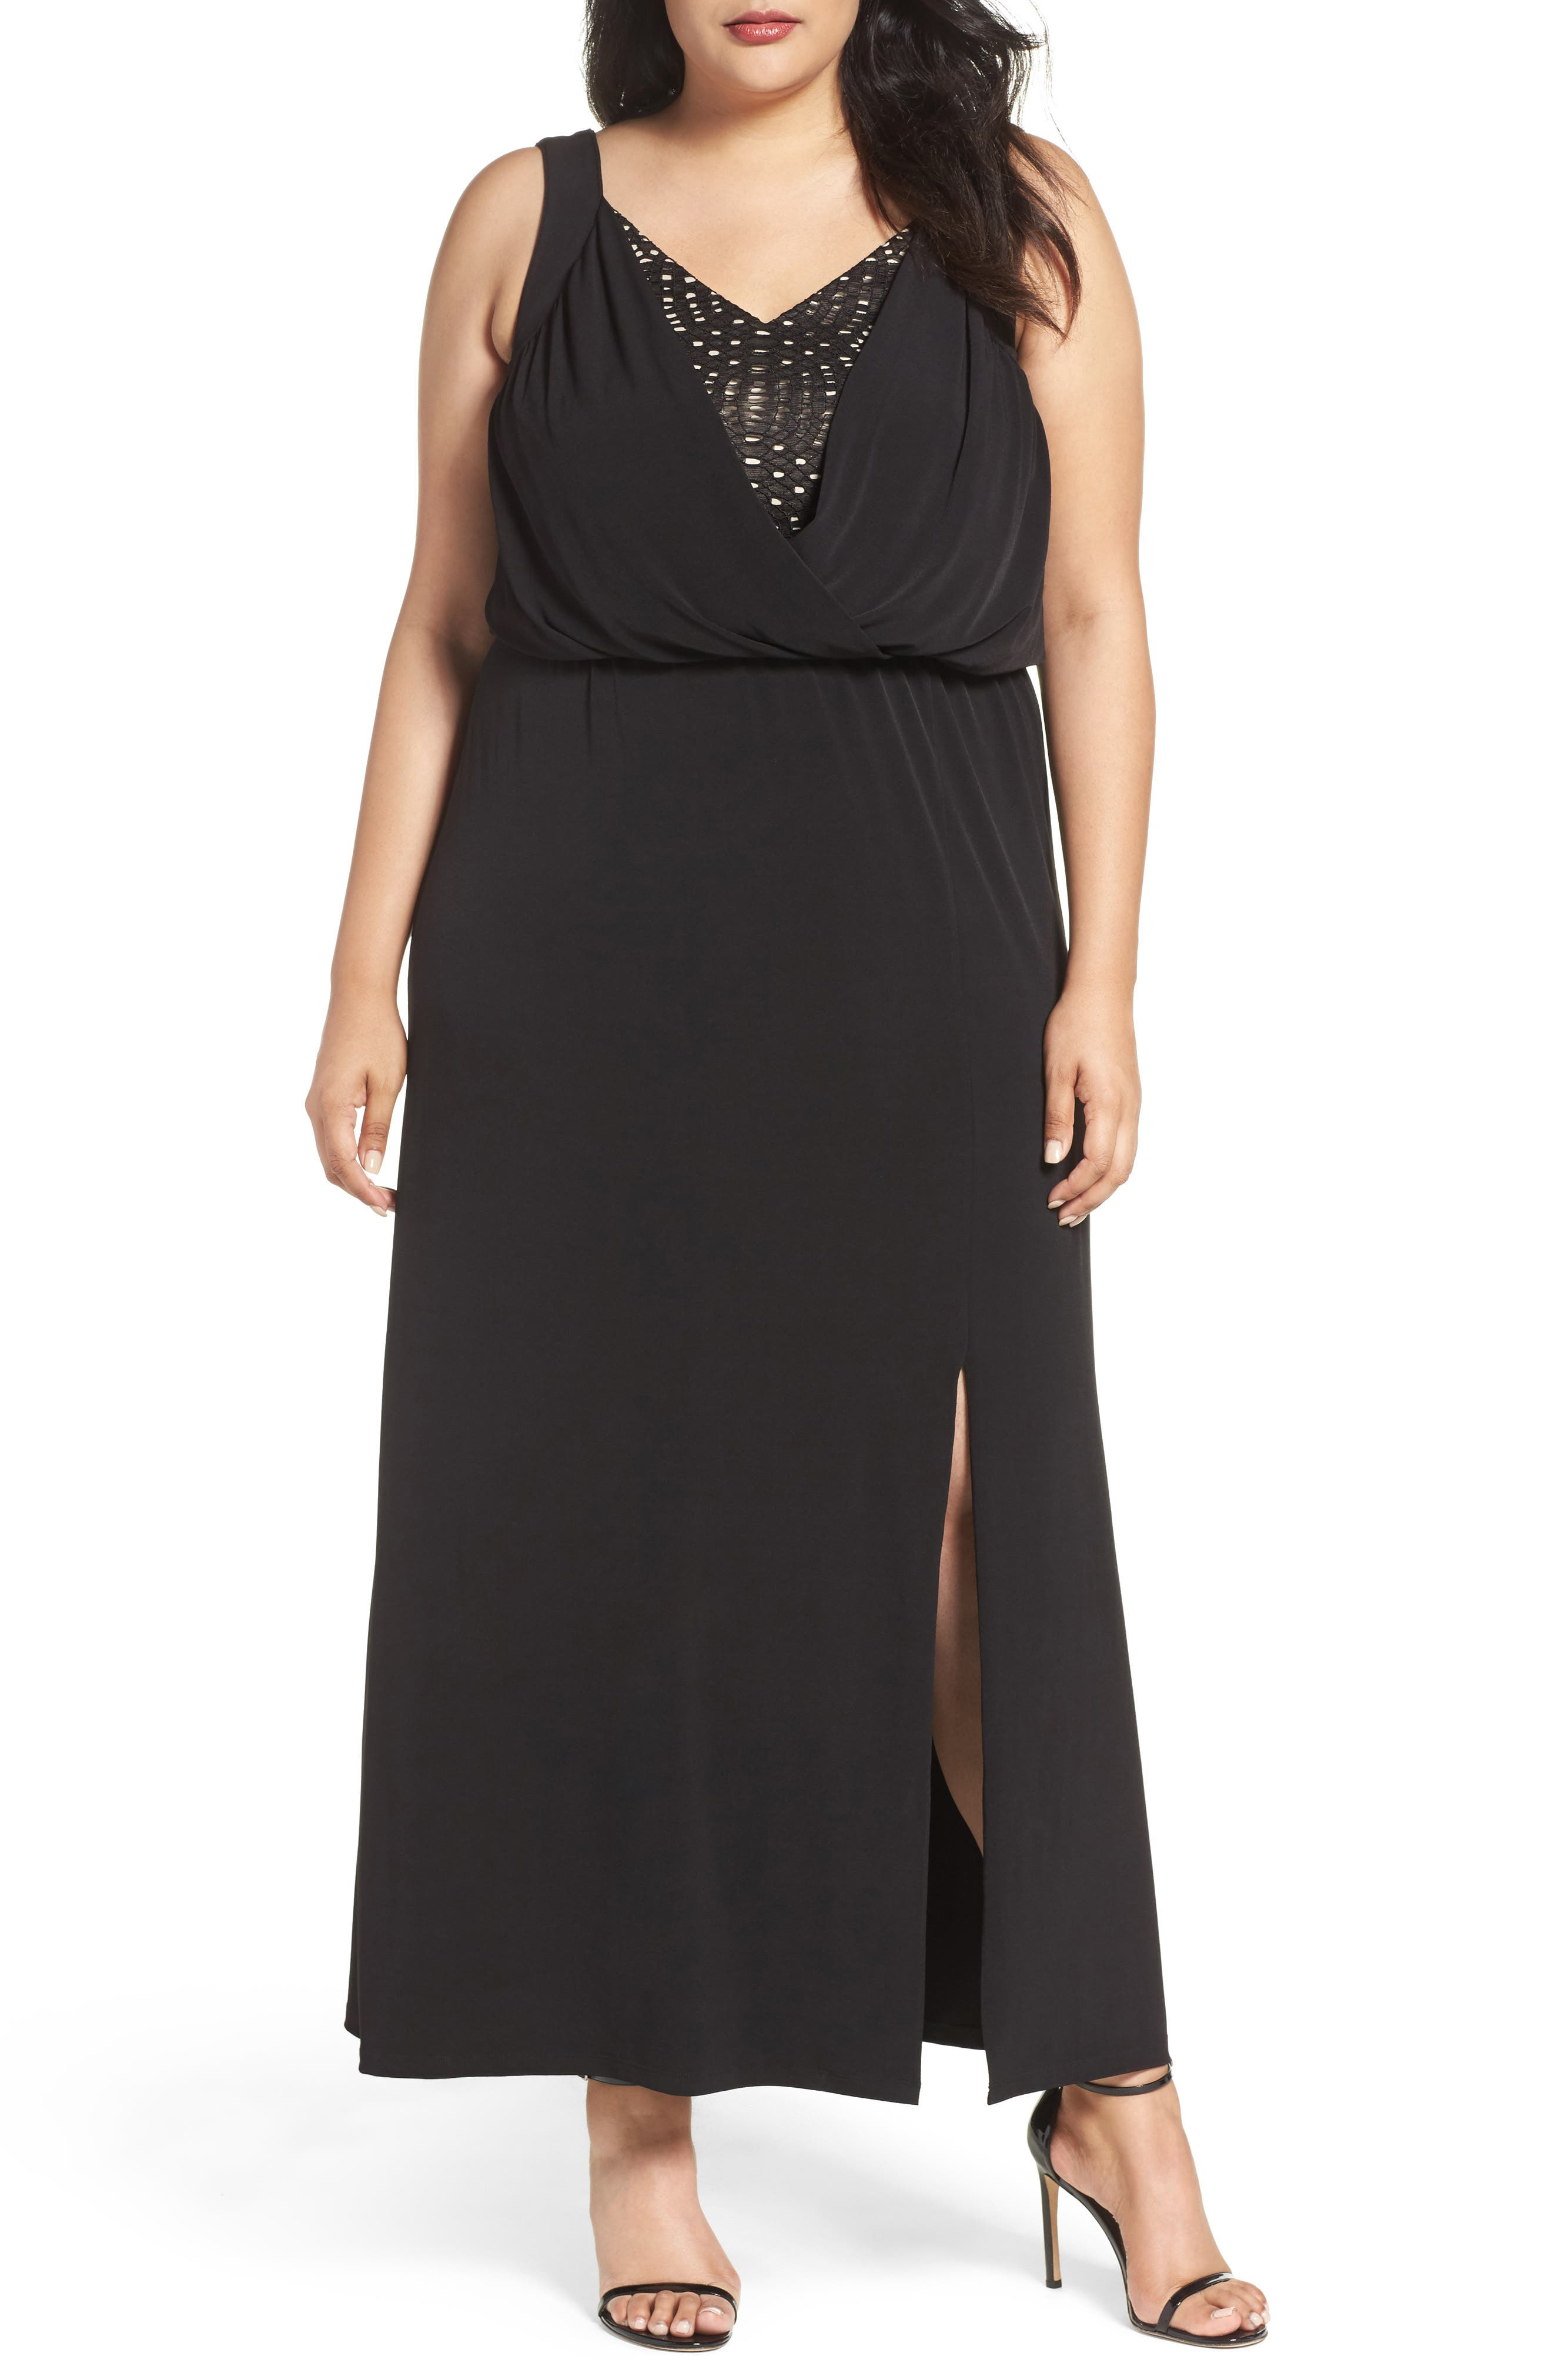 Alternate Image 1 Selected - London Times Contrast Underlay Jersey Maxi Dress (Plus Size)